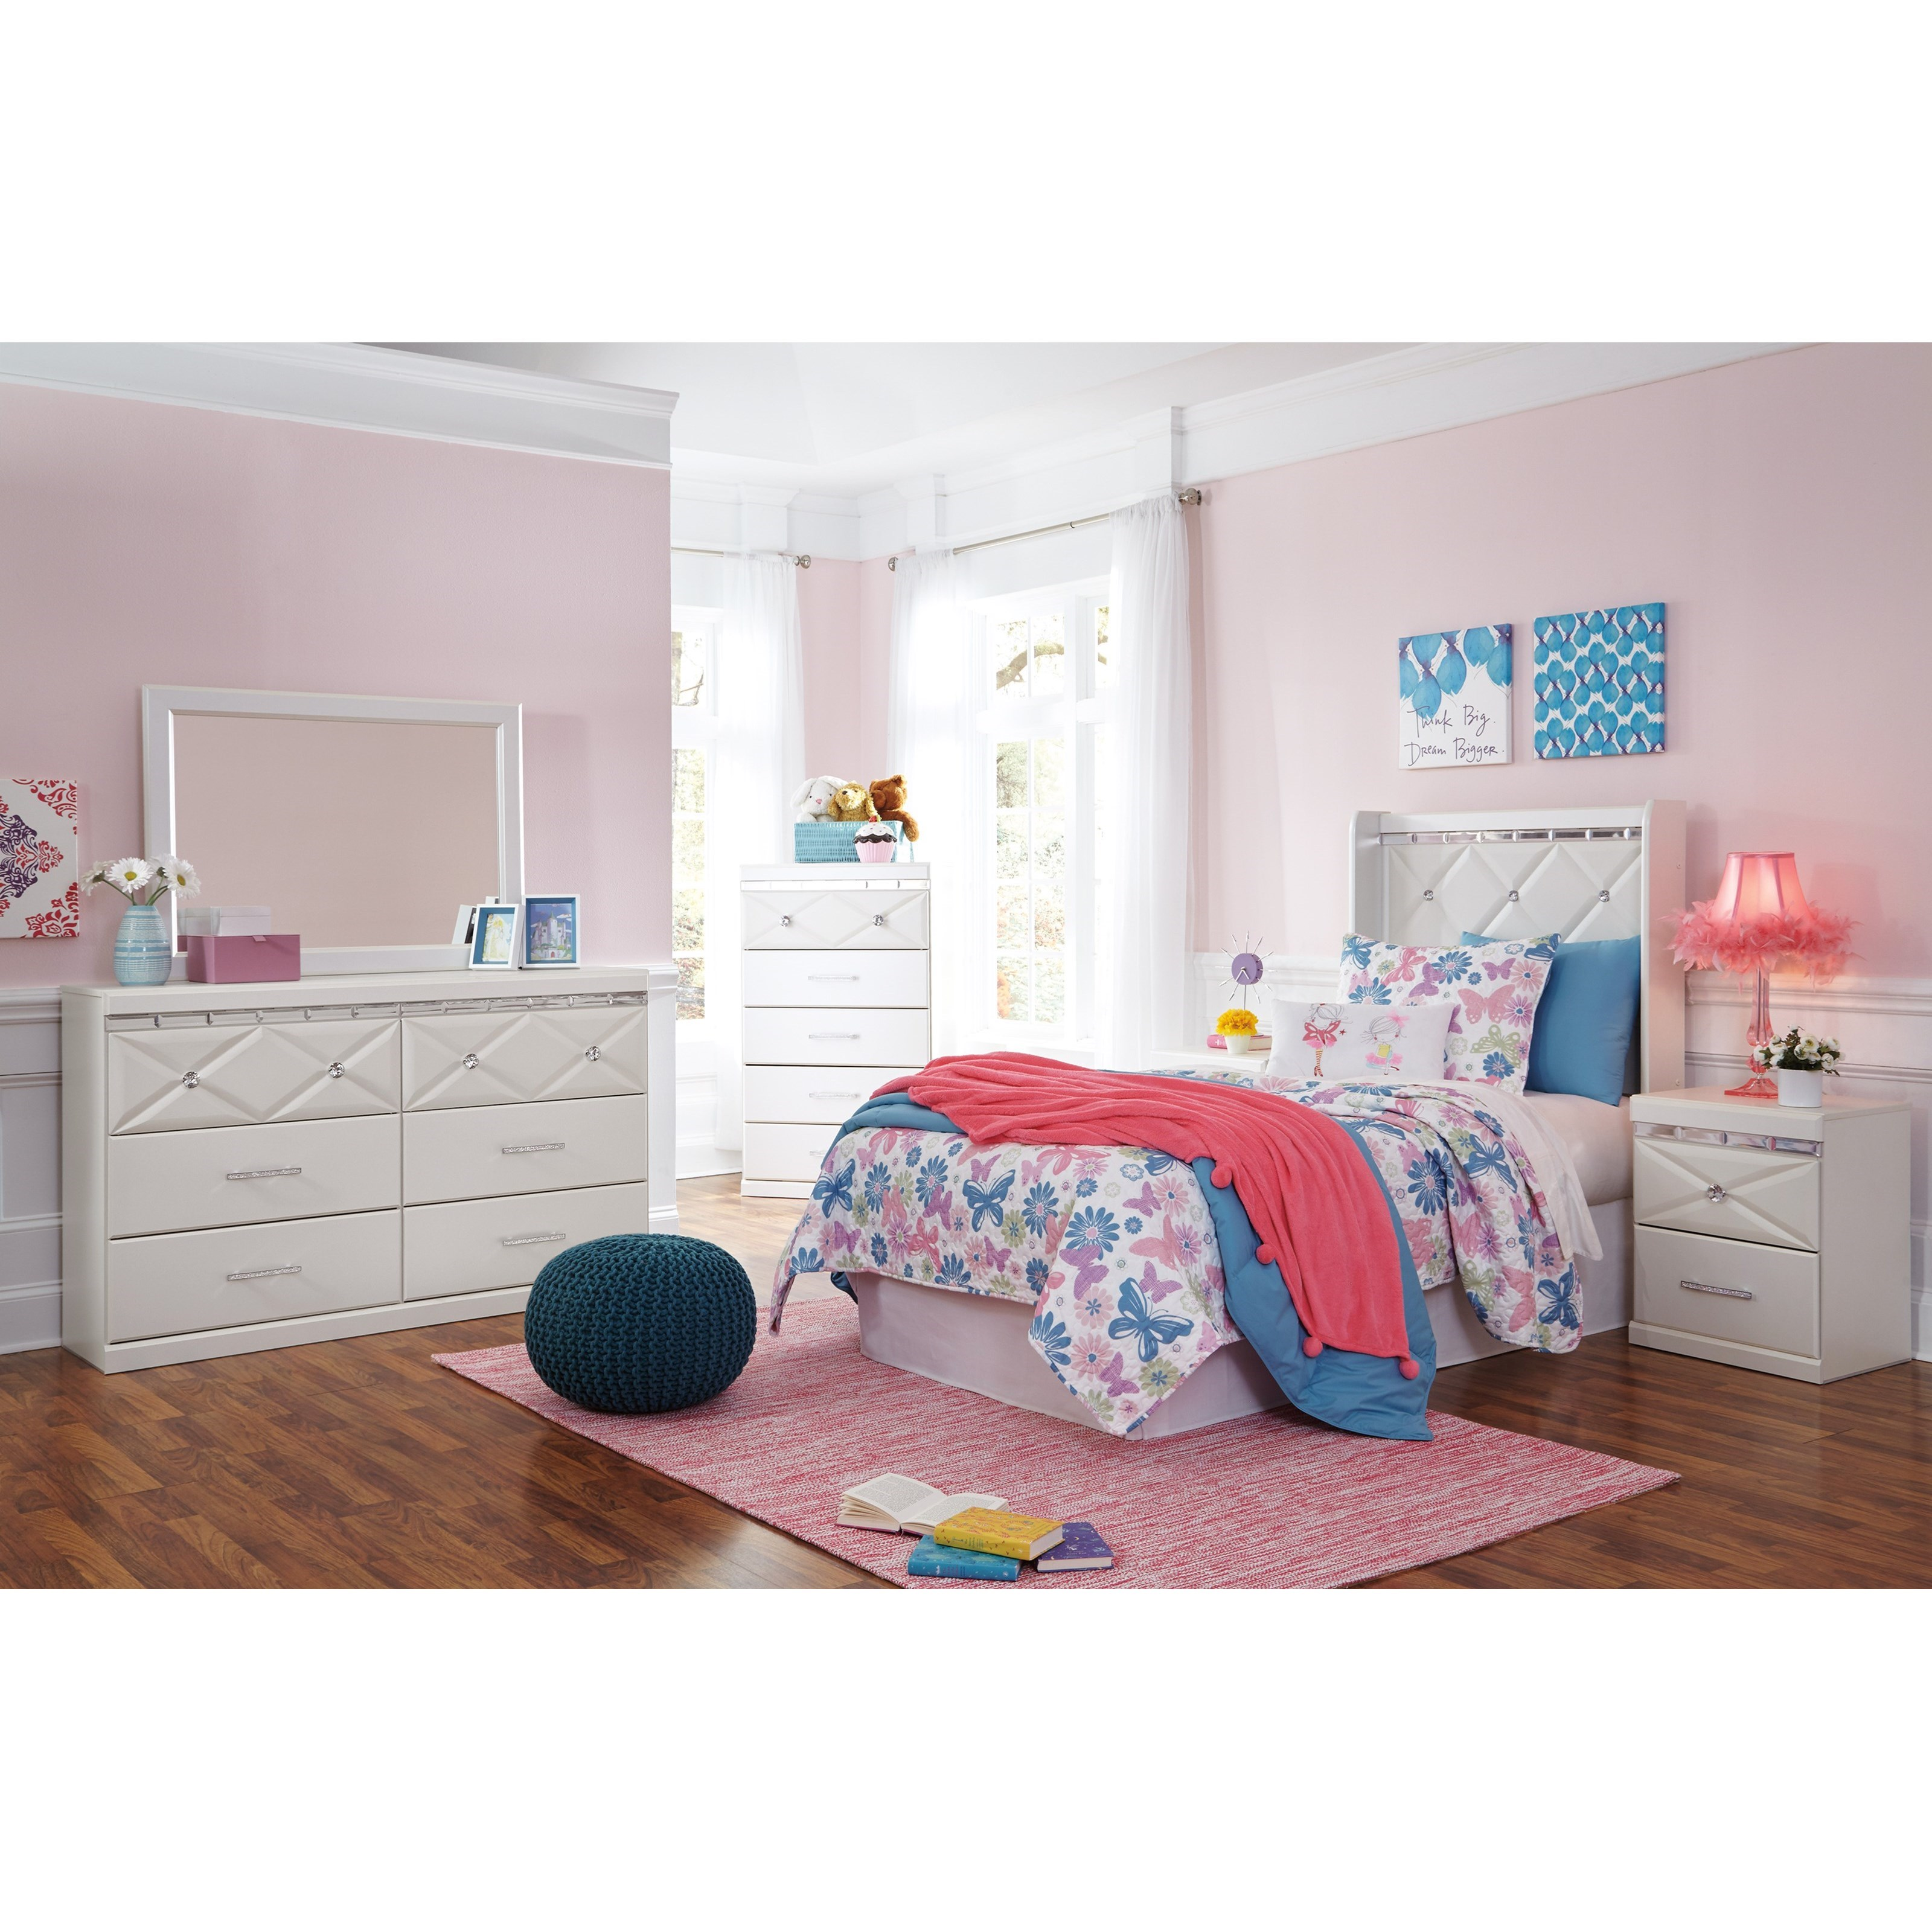 Dreamur Twin Bedroom Group by Signature Design by Ashley at Northeast Factory Direct